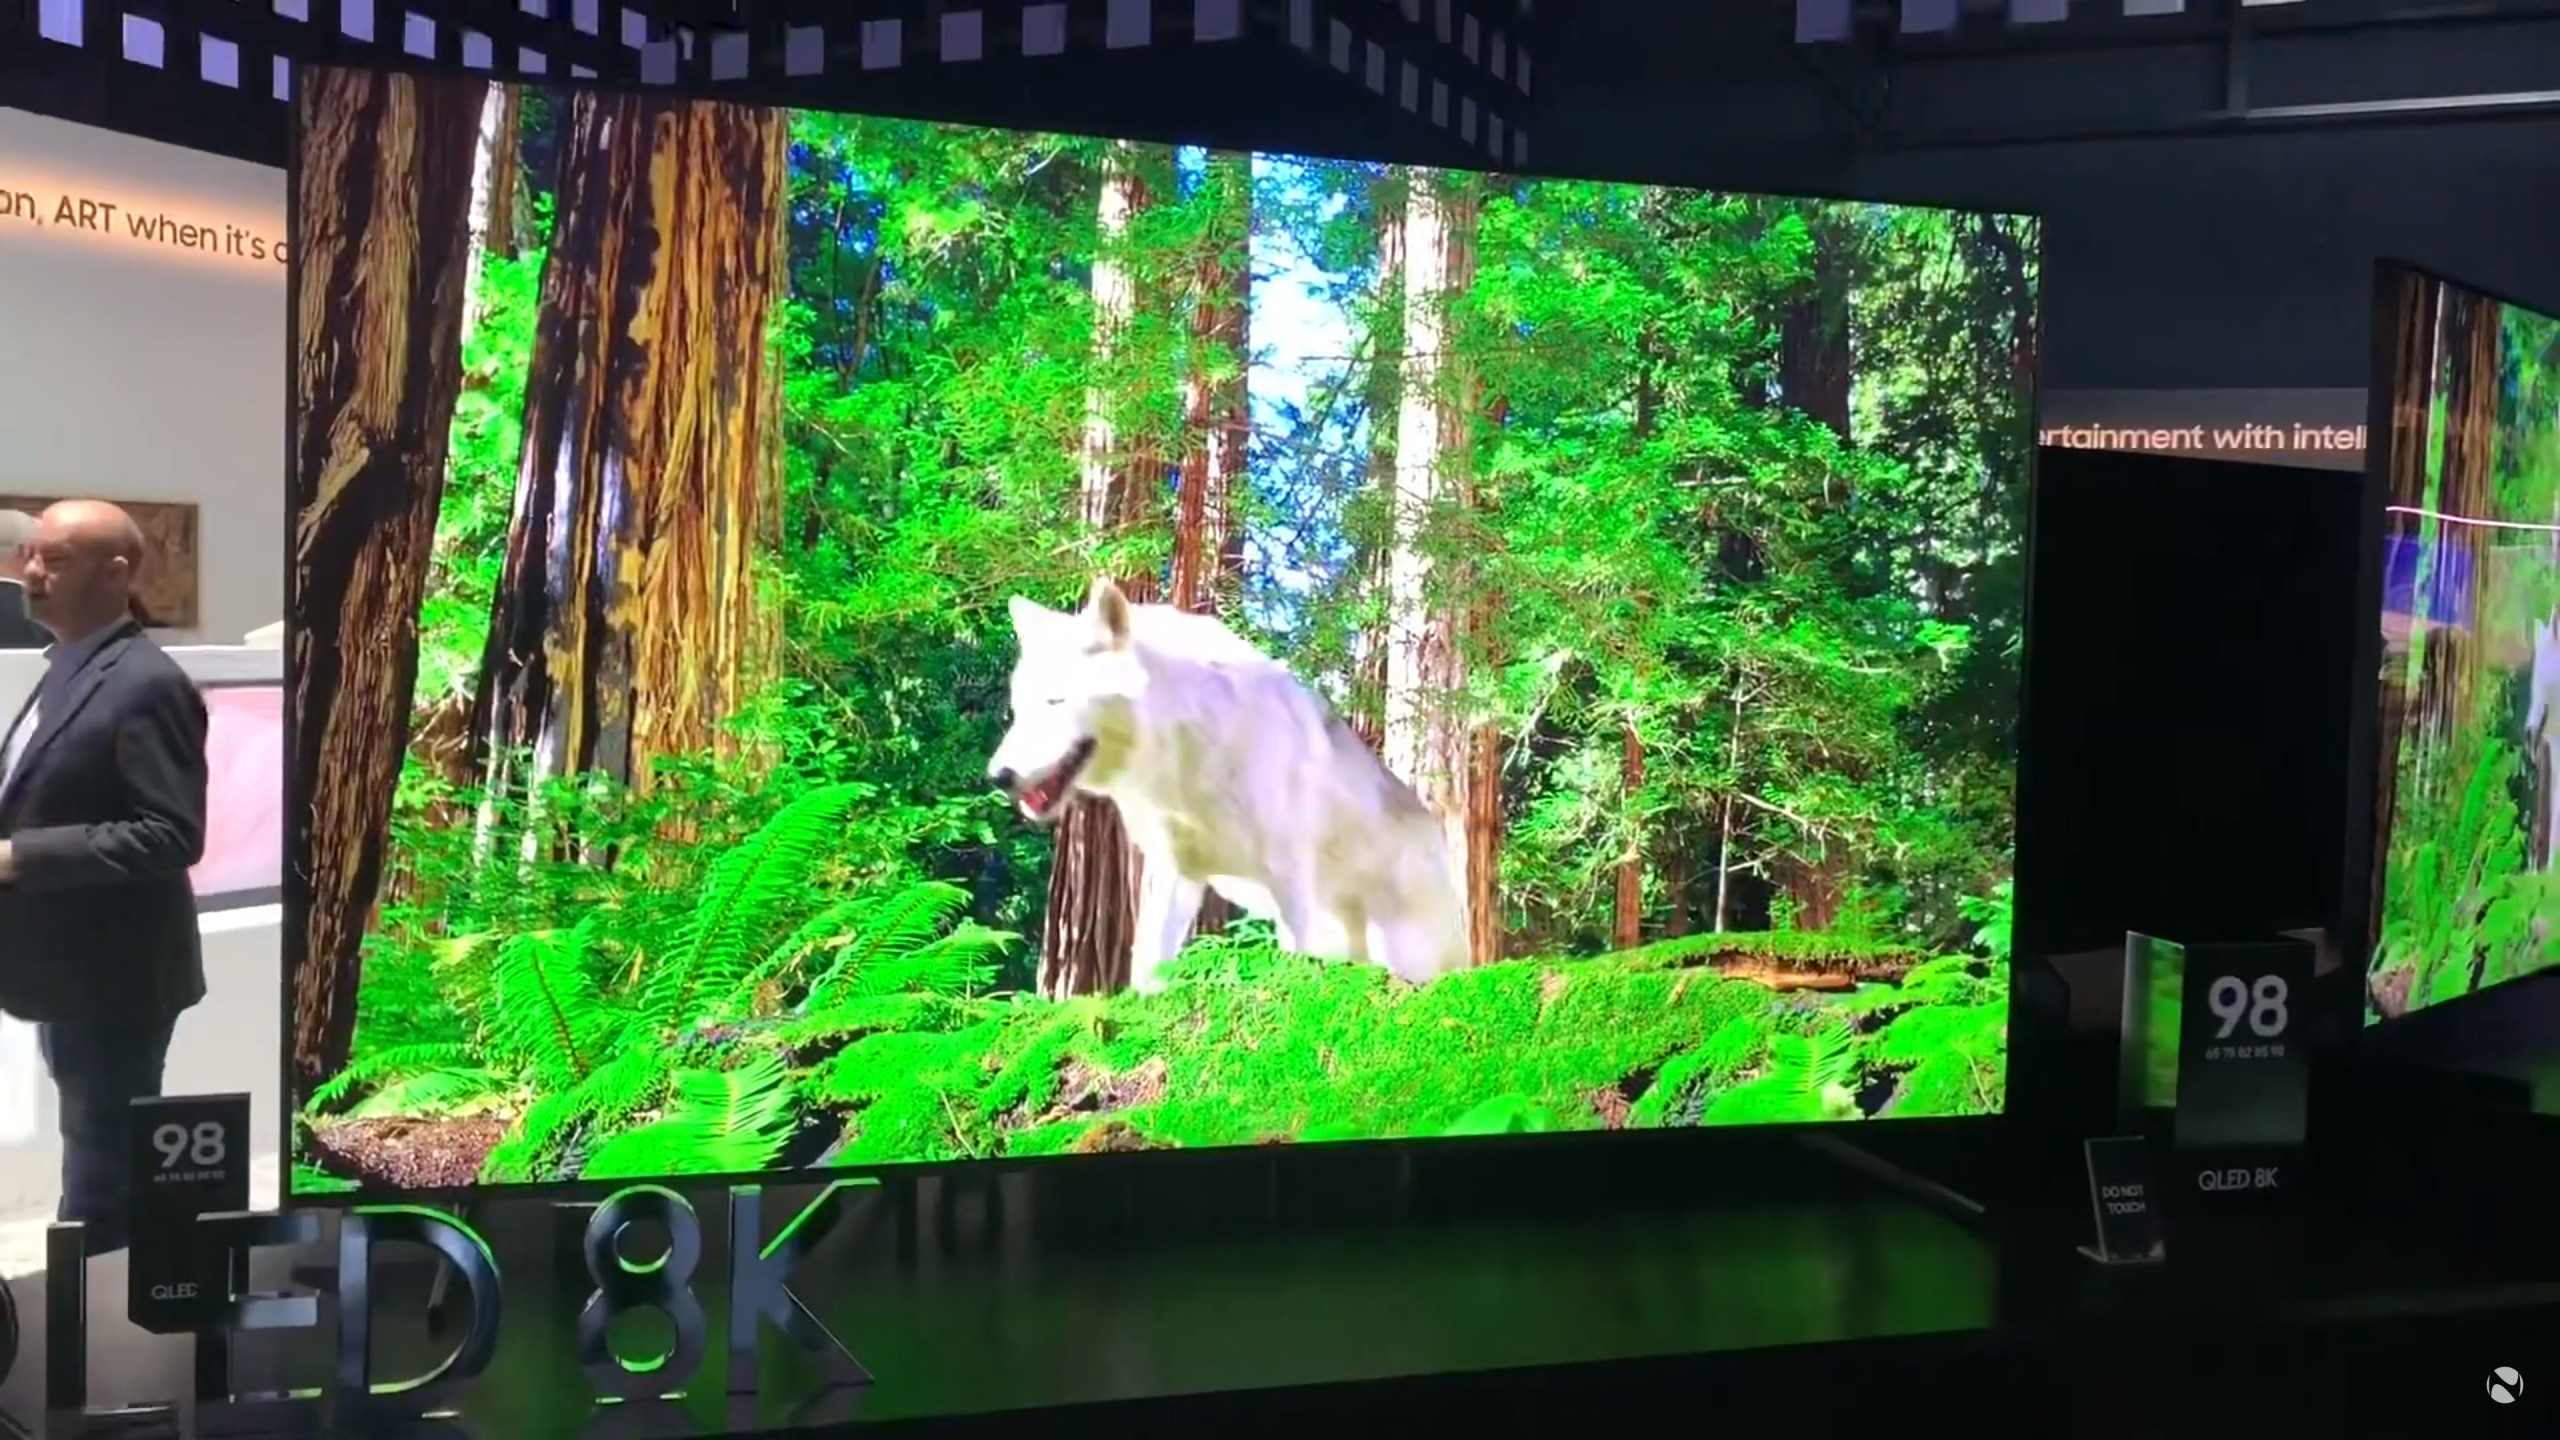 CES 2019: Samsung's booth has 8K QLED TVs, the Wall micro-LED TV